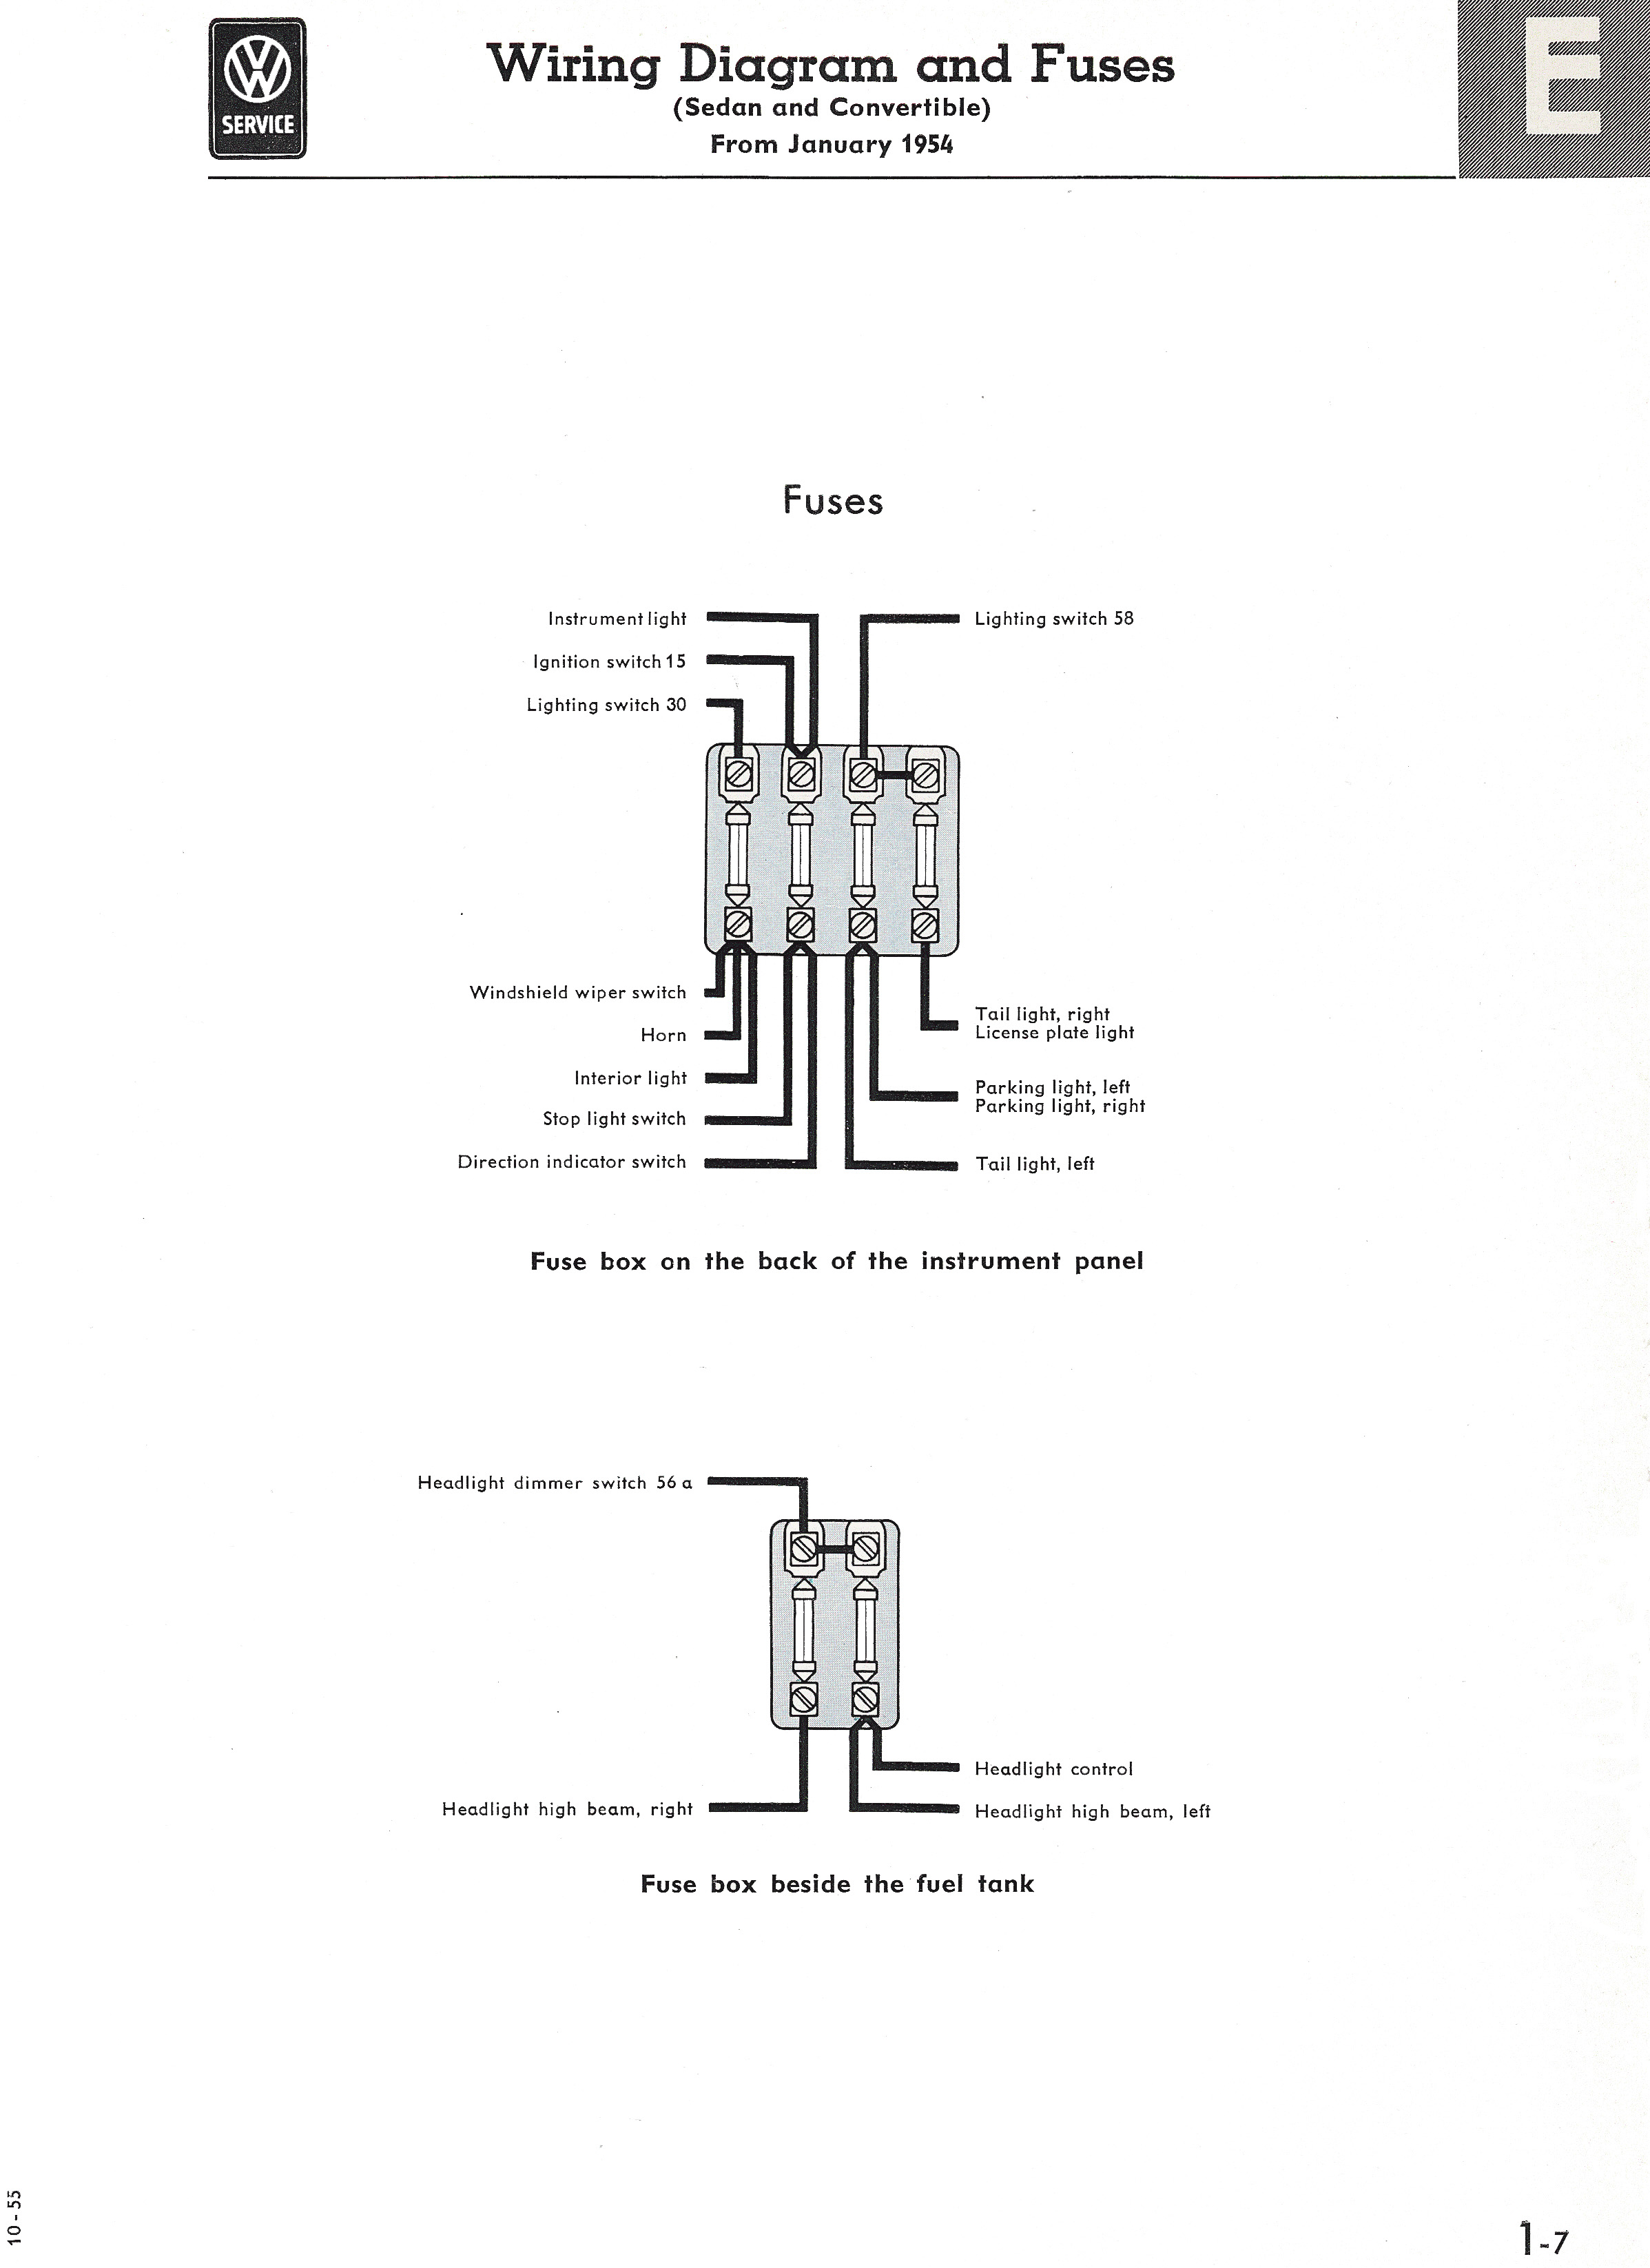 1968 Vw Bug Fuse Box Another Wiring Diagrams 2001 Oldsmobile Alero Images Gallery